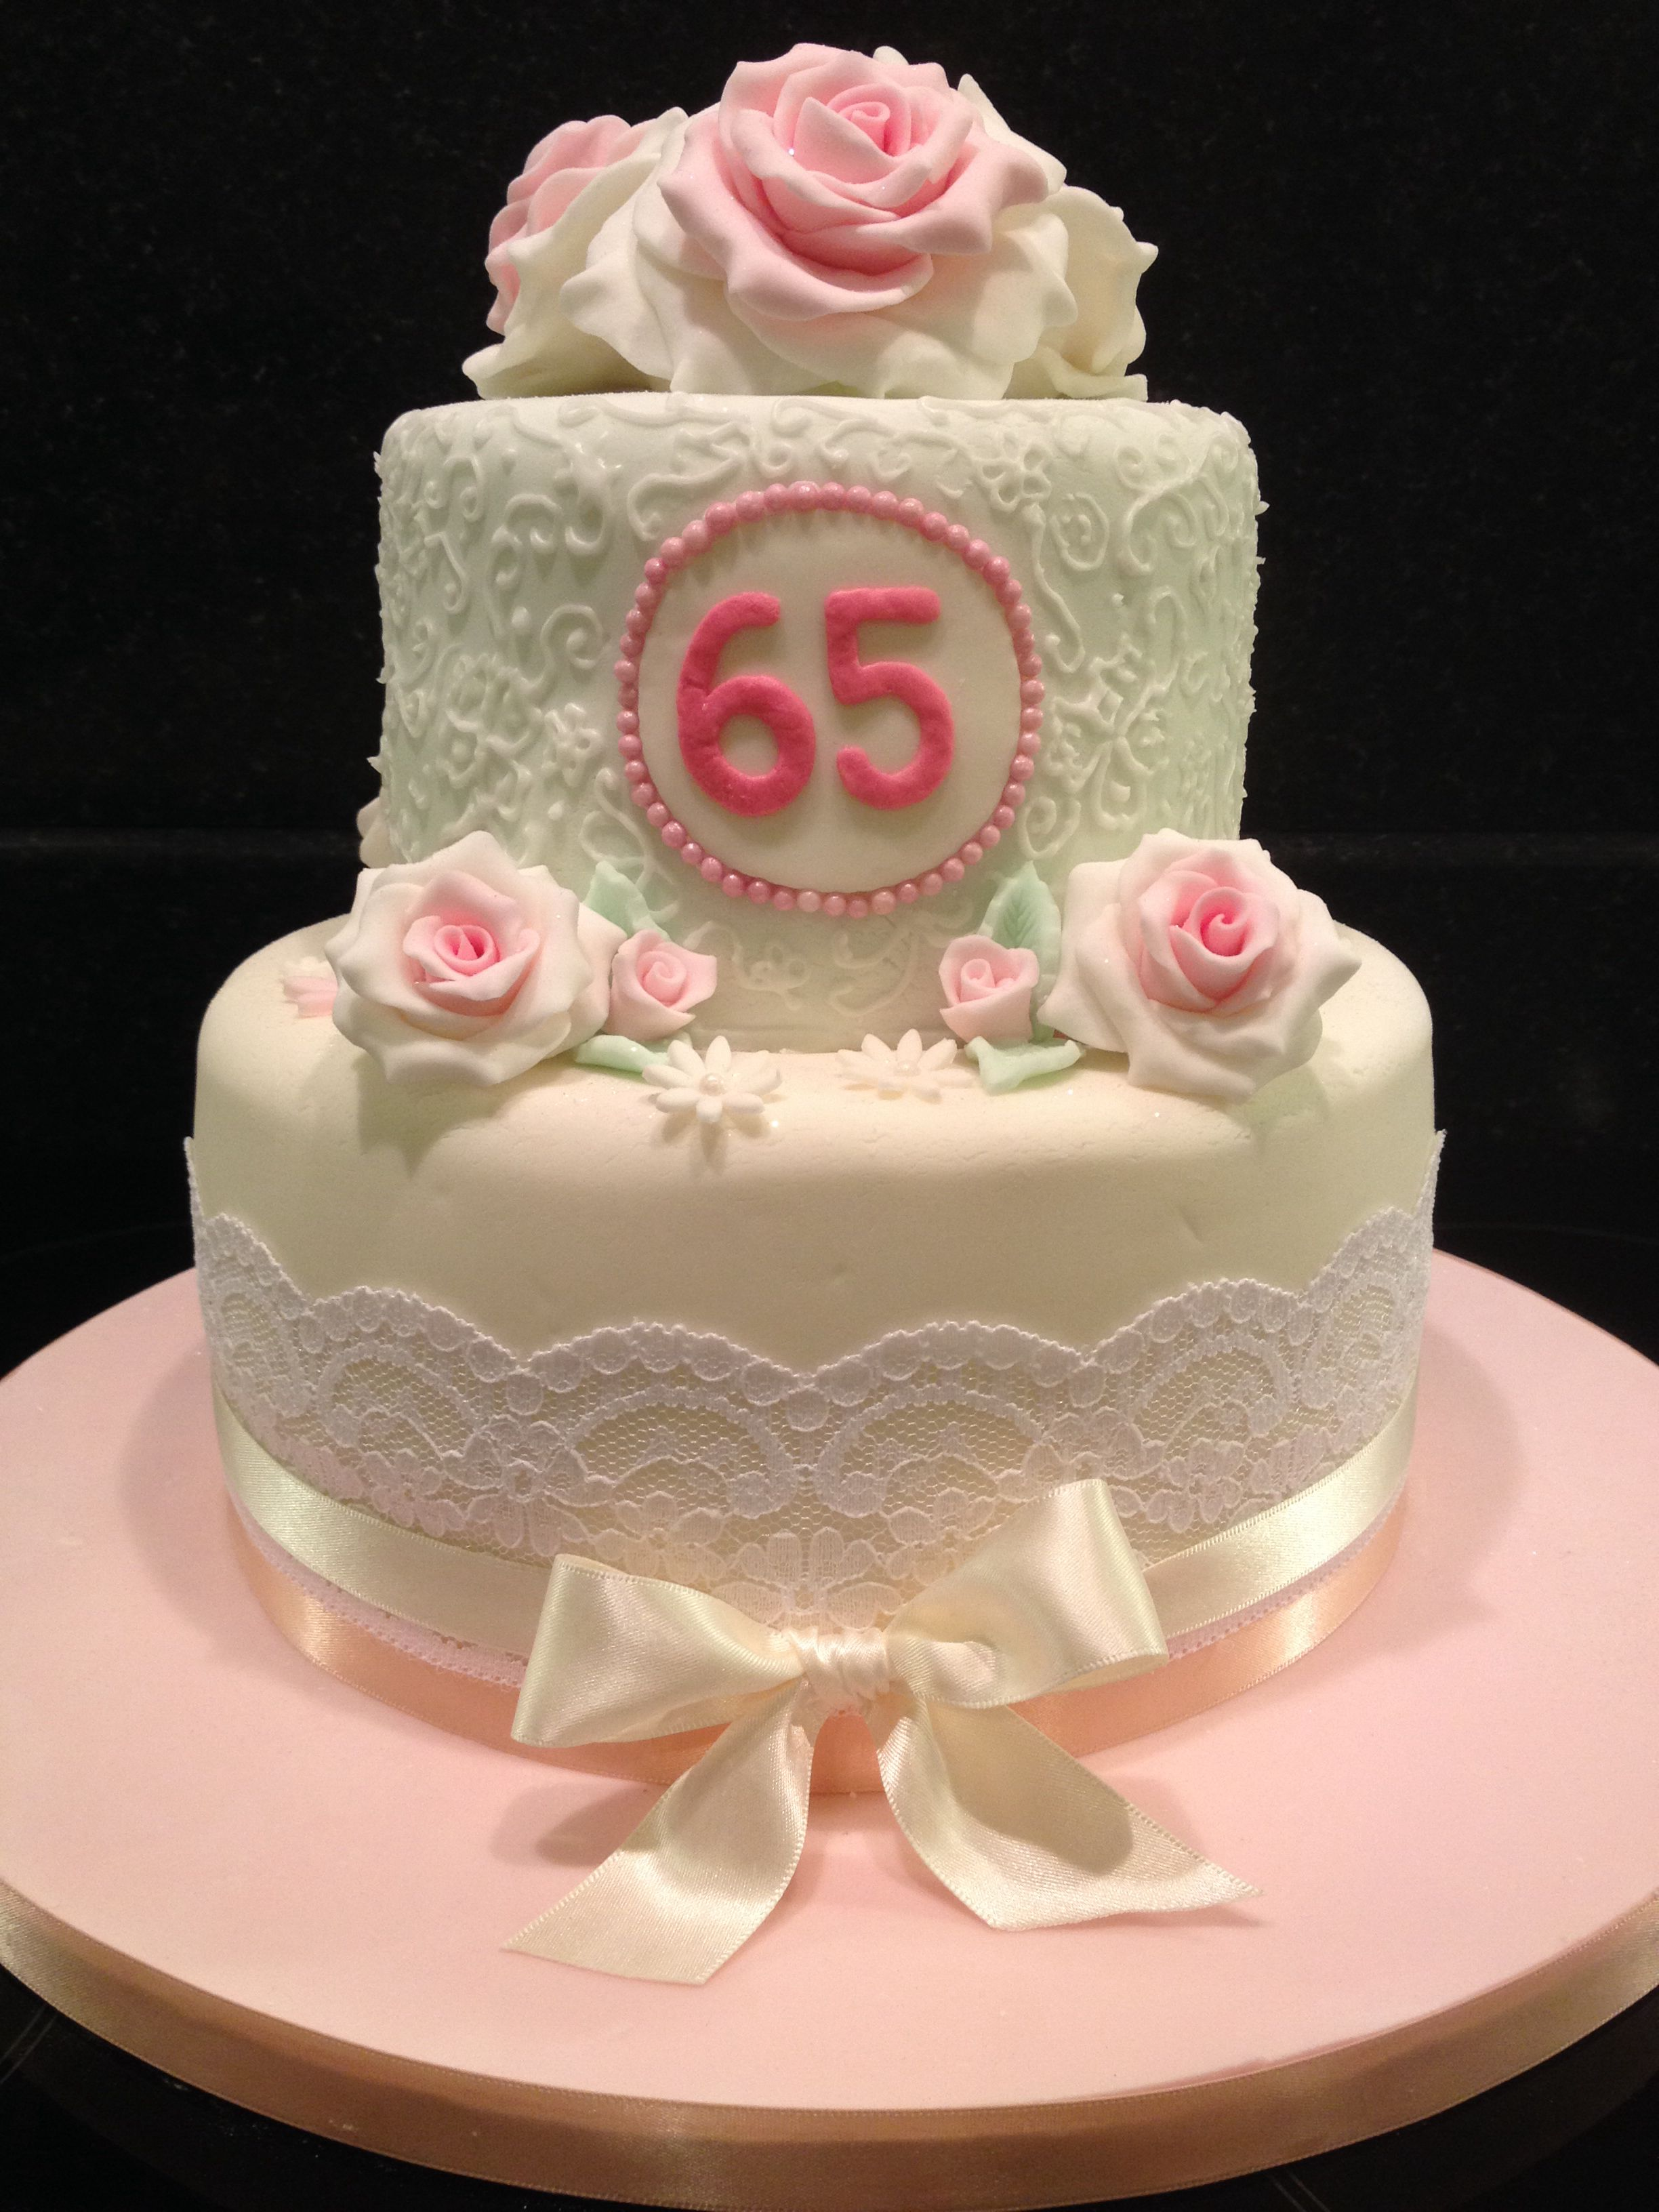 65th Birthday Cake Subtle Pastel Colours